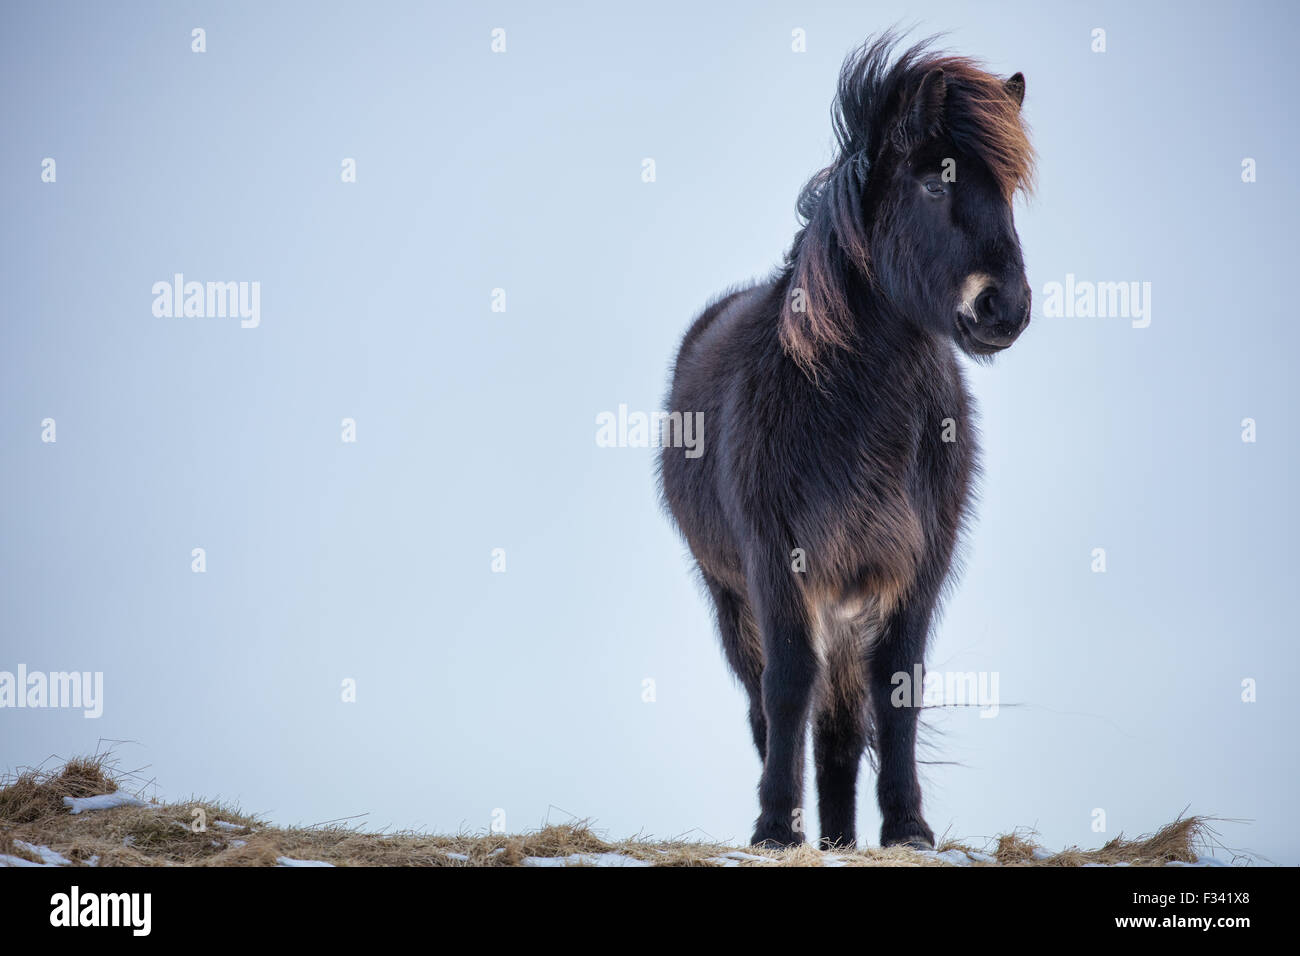 a horse nr Helgafell, Snaefellsness Peninsula, Icelnd - Stock Image